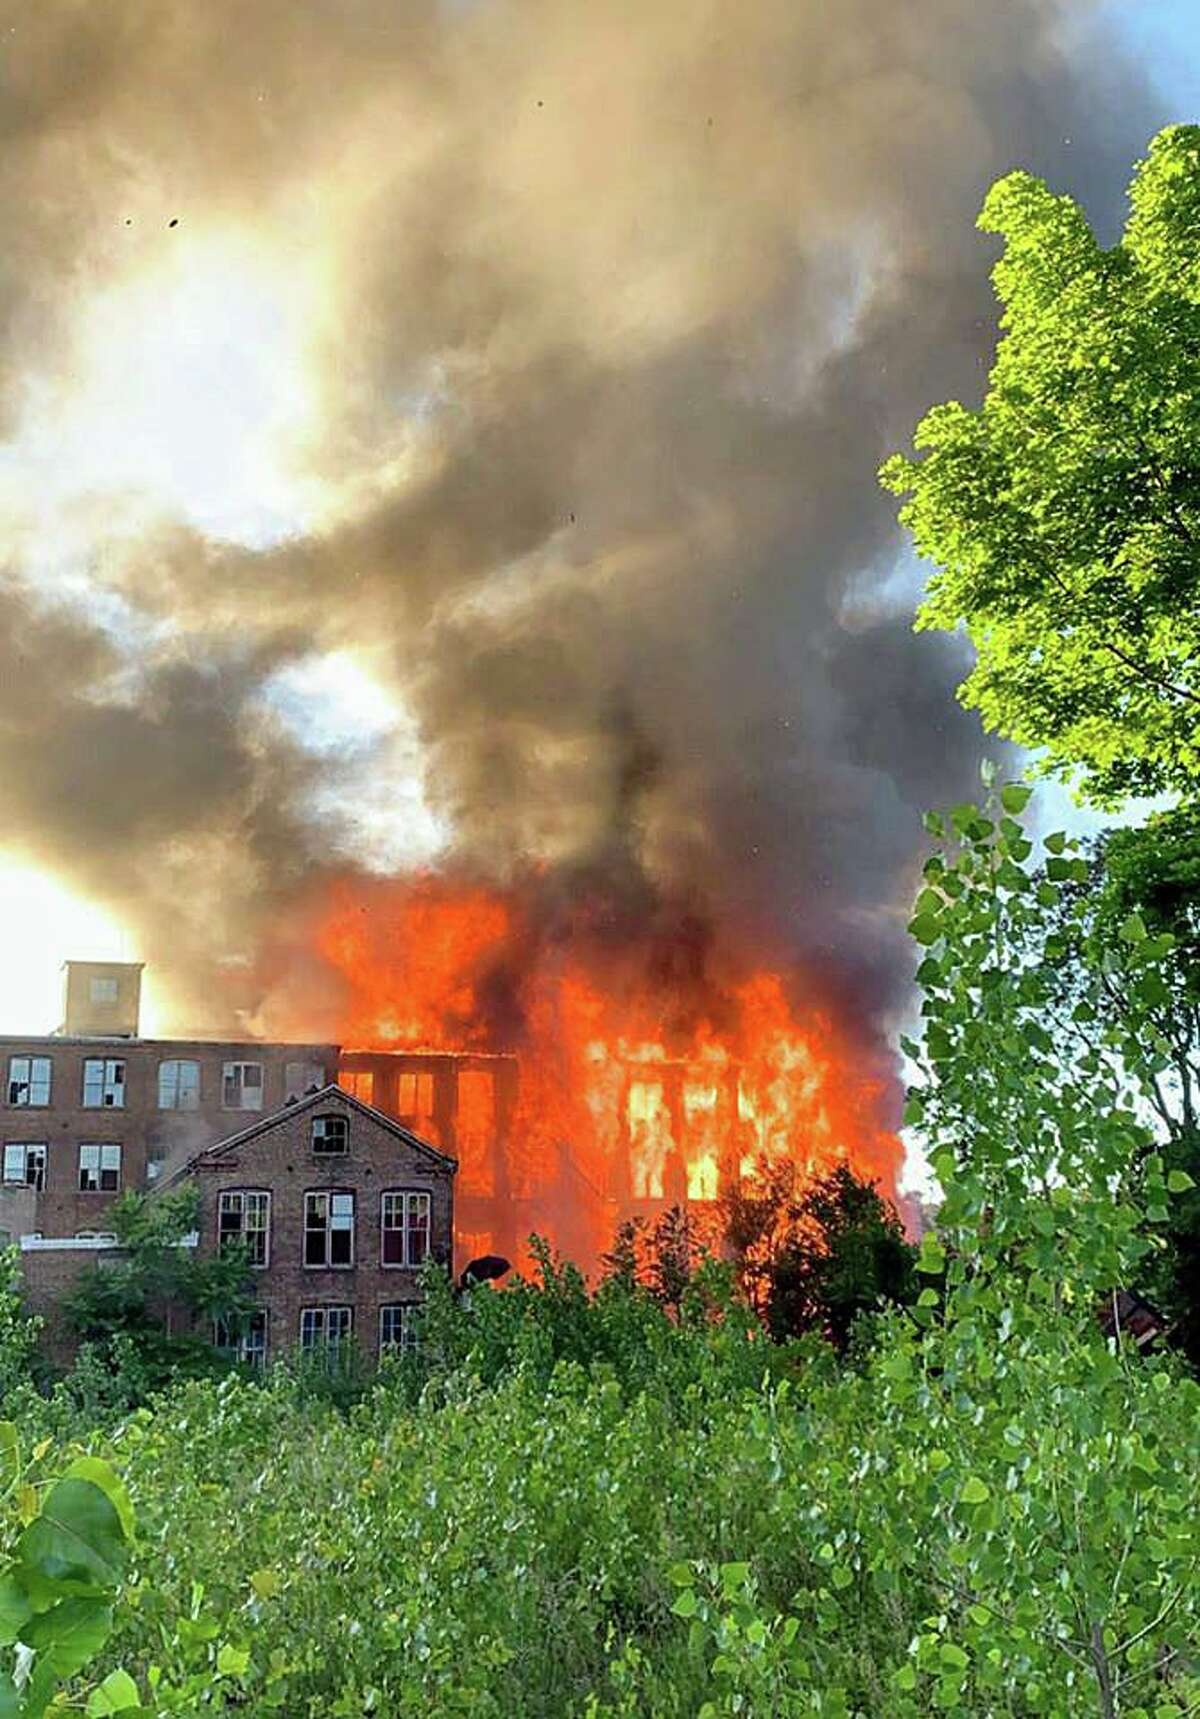 A massive fire tore through the the former Star Pin Co. in downtown Shelton on Saturday, June 13, 2020. Officials are investigating the cause of the fire in the vacant 19th-century buillding.